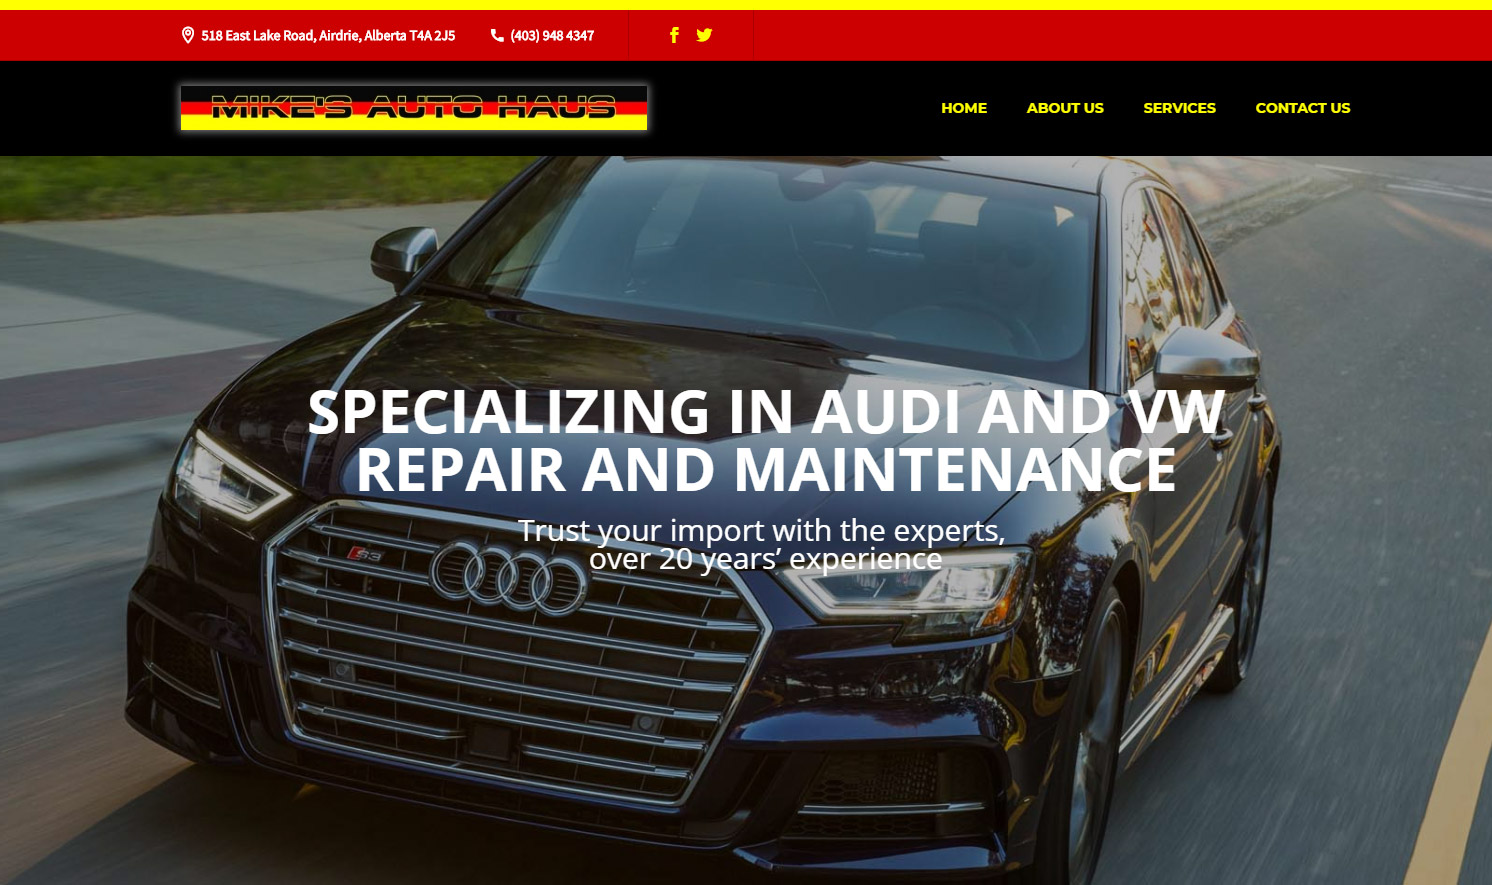 mikesautohaus-airdrie – Digital Marketing Agency